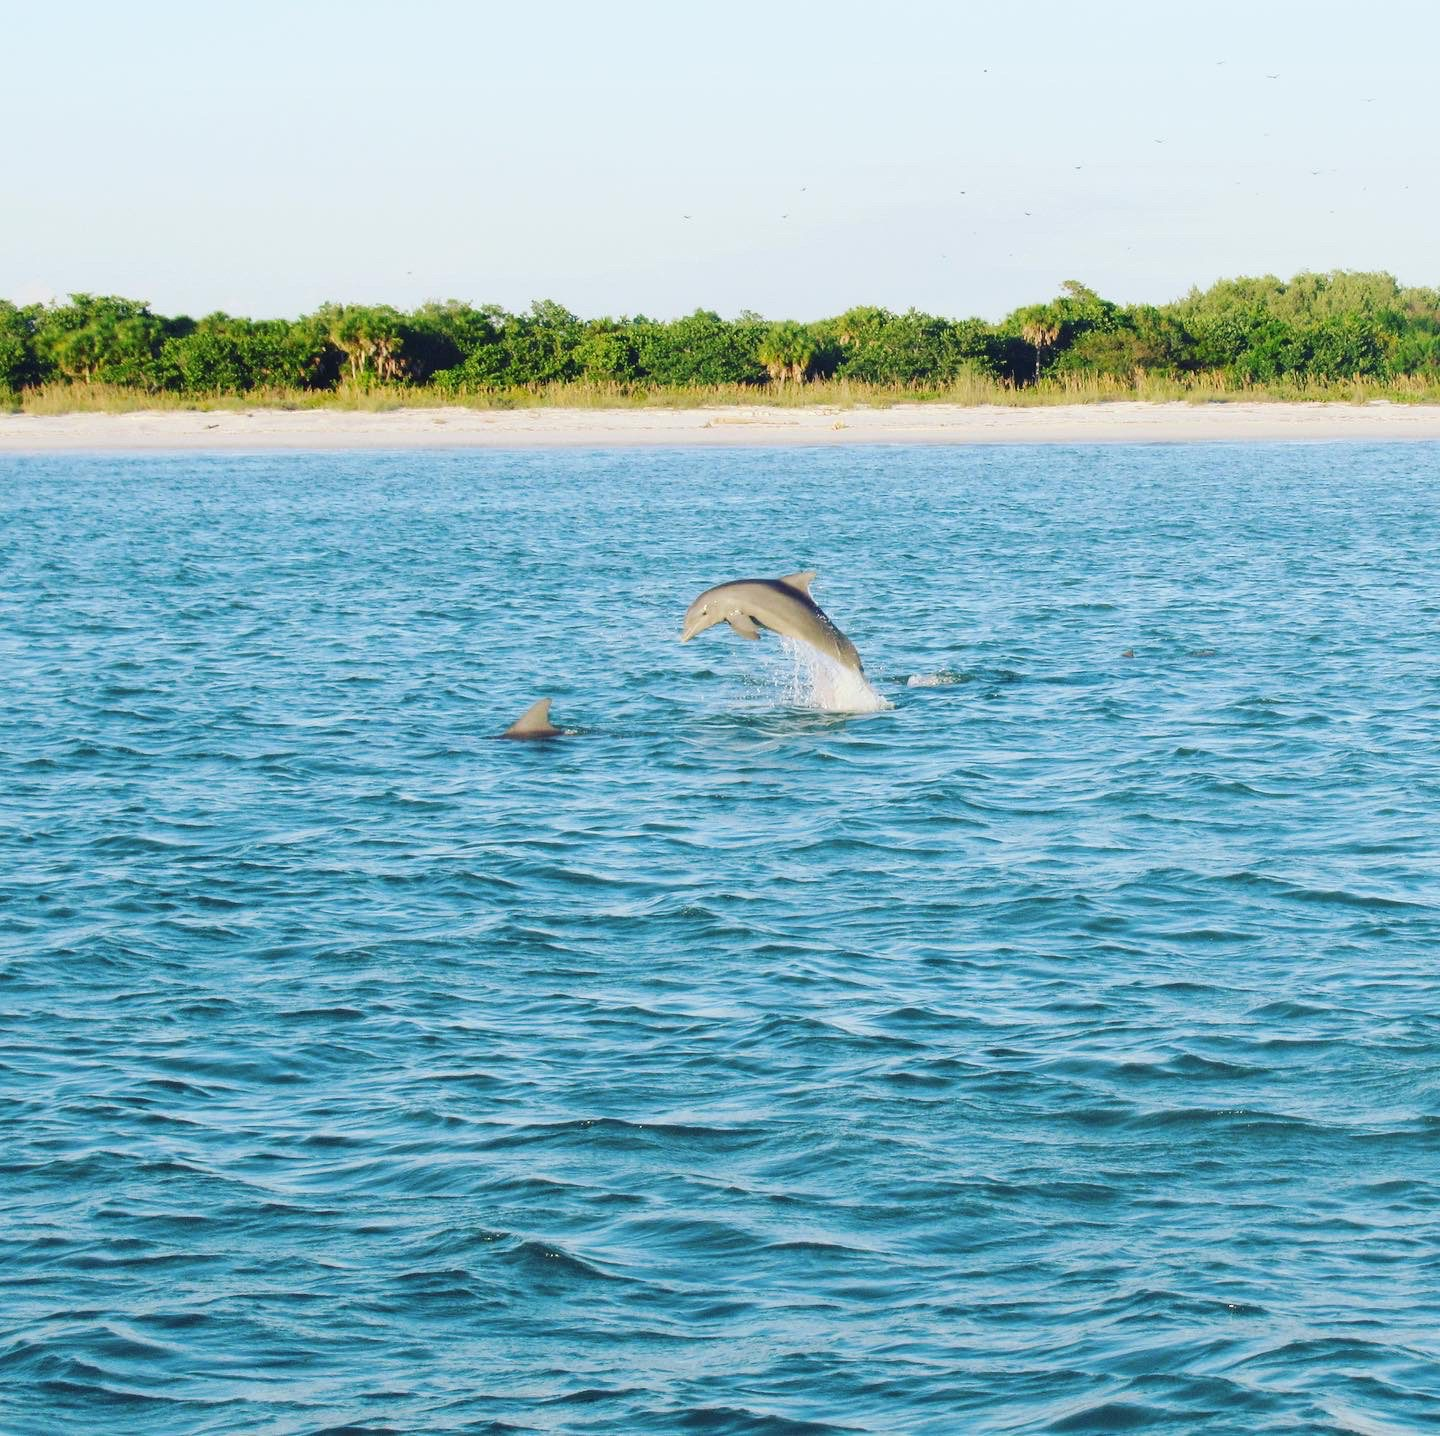 Dolphin spotted